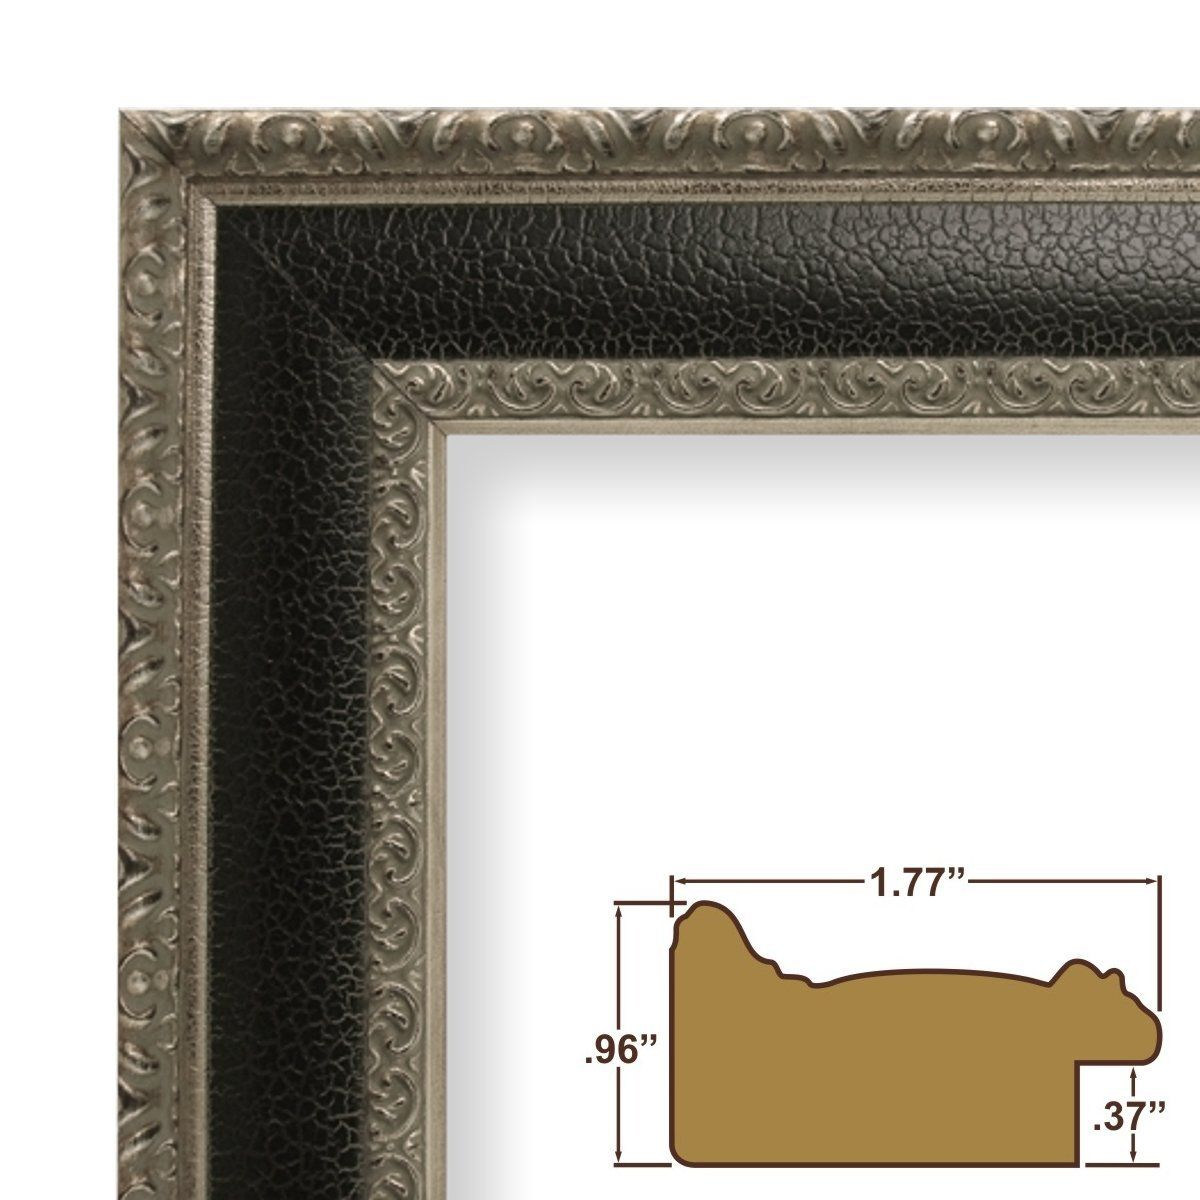 Amazon.com: 12x16 Picture / Poster Frame, Distressed Ornate Finish ...